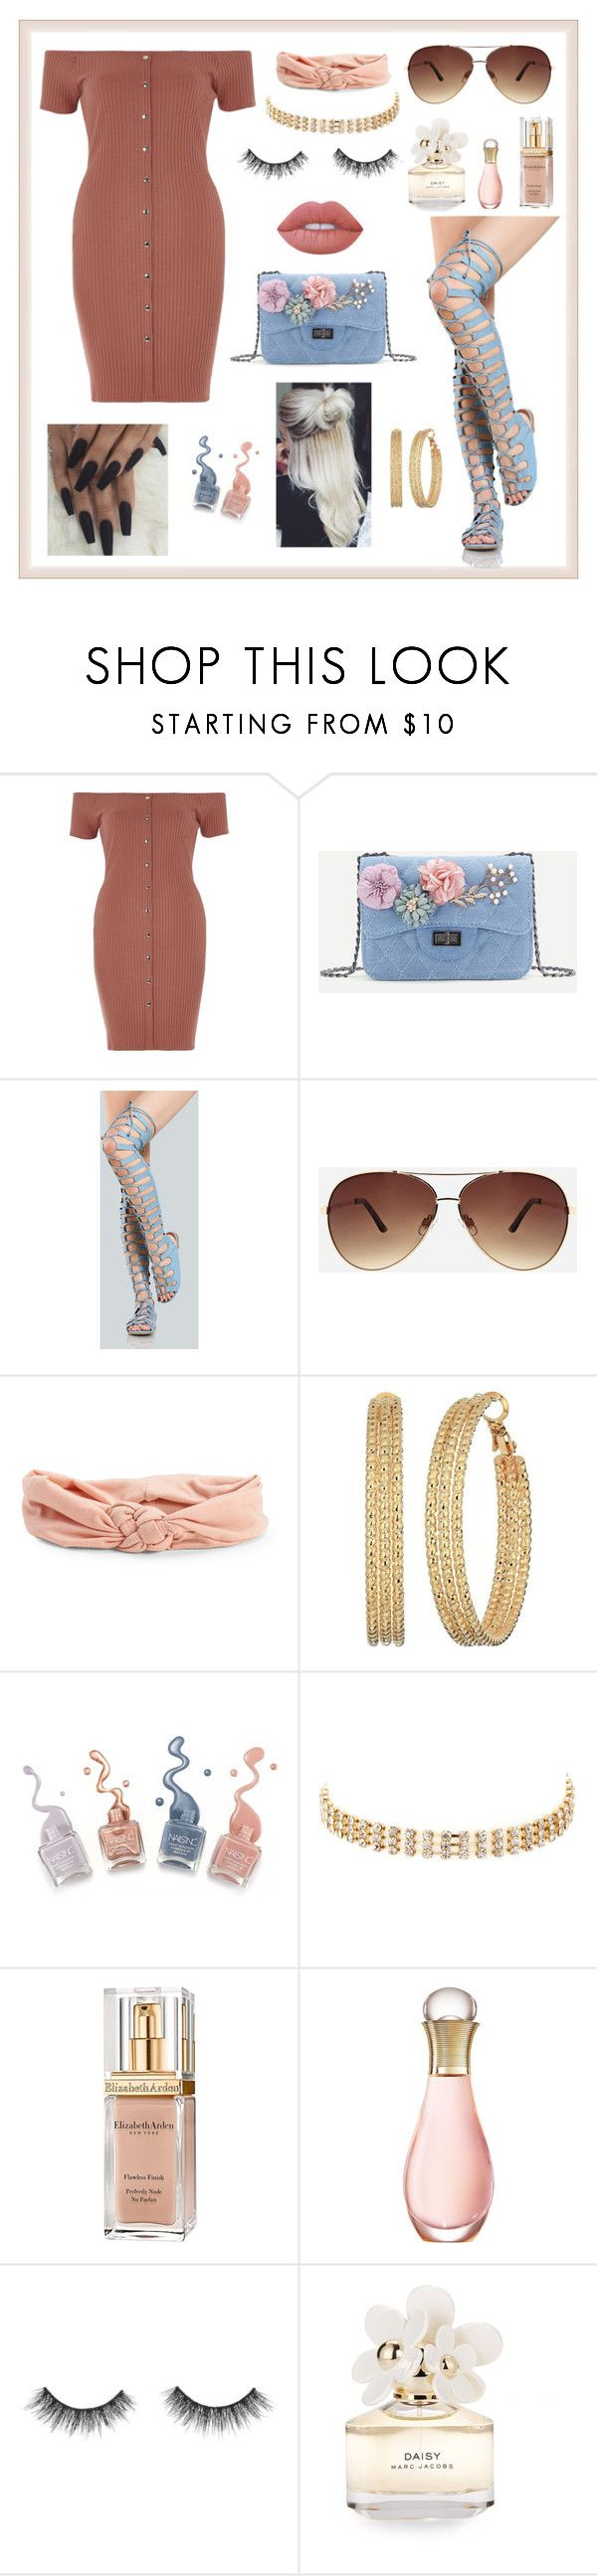 """Darling Denim"" by mcadamsa on Polyvore featuring River Island, Ashley Stewart, Aéropostale, GUESS, Ettika, Elizabeth Arden, Christian Dior, Marc Jacobs, Lime Crime and gladiatorsandles"